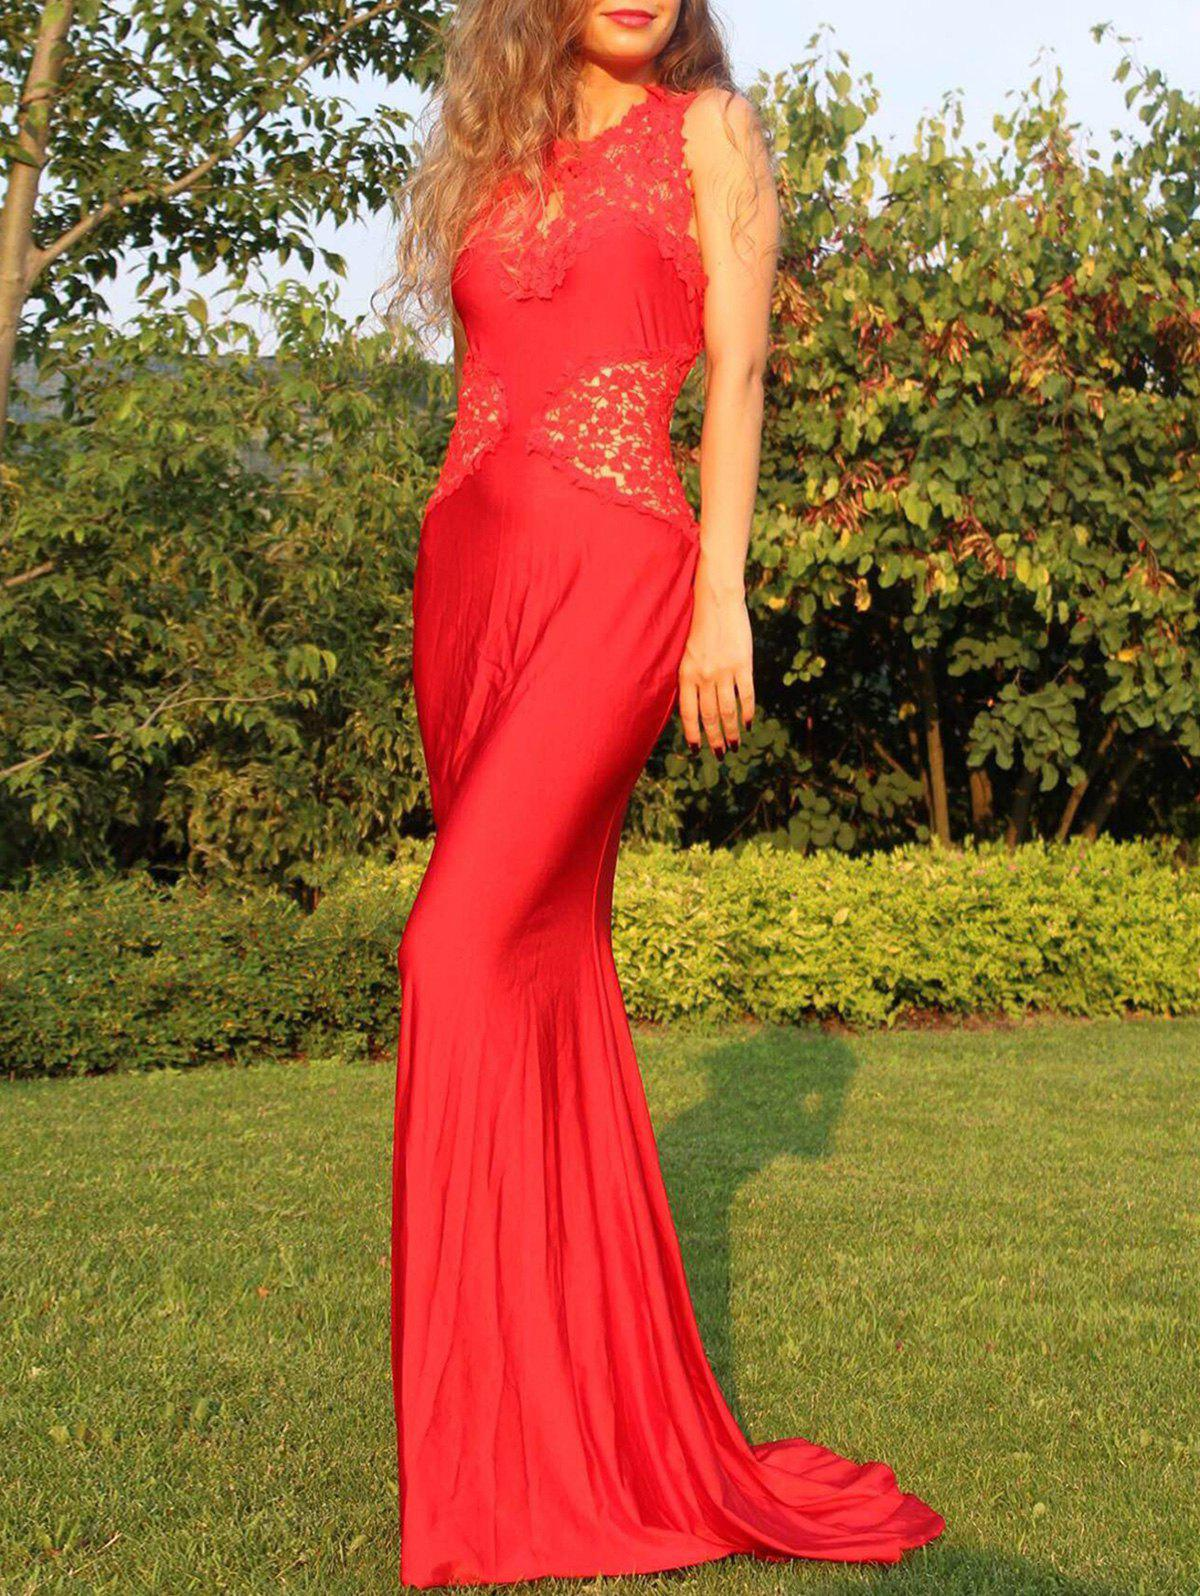 Lace Cut-Out Skinny Fishtail Dress For Women - RED M